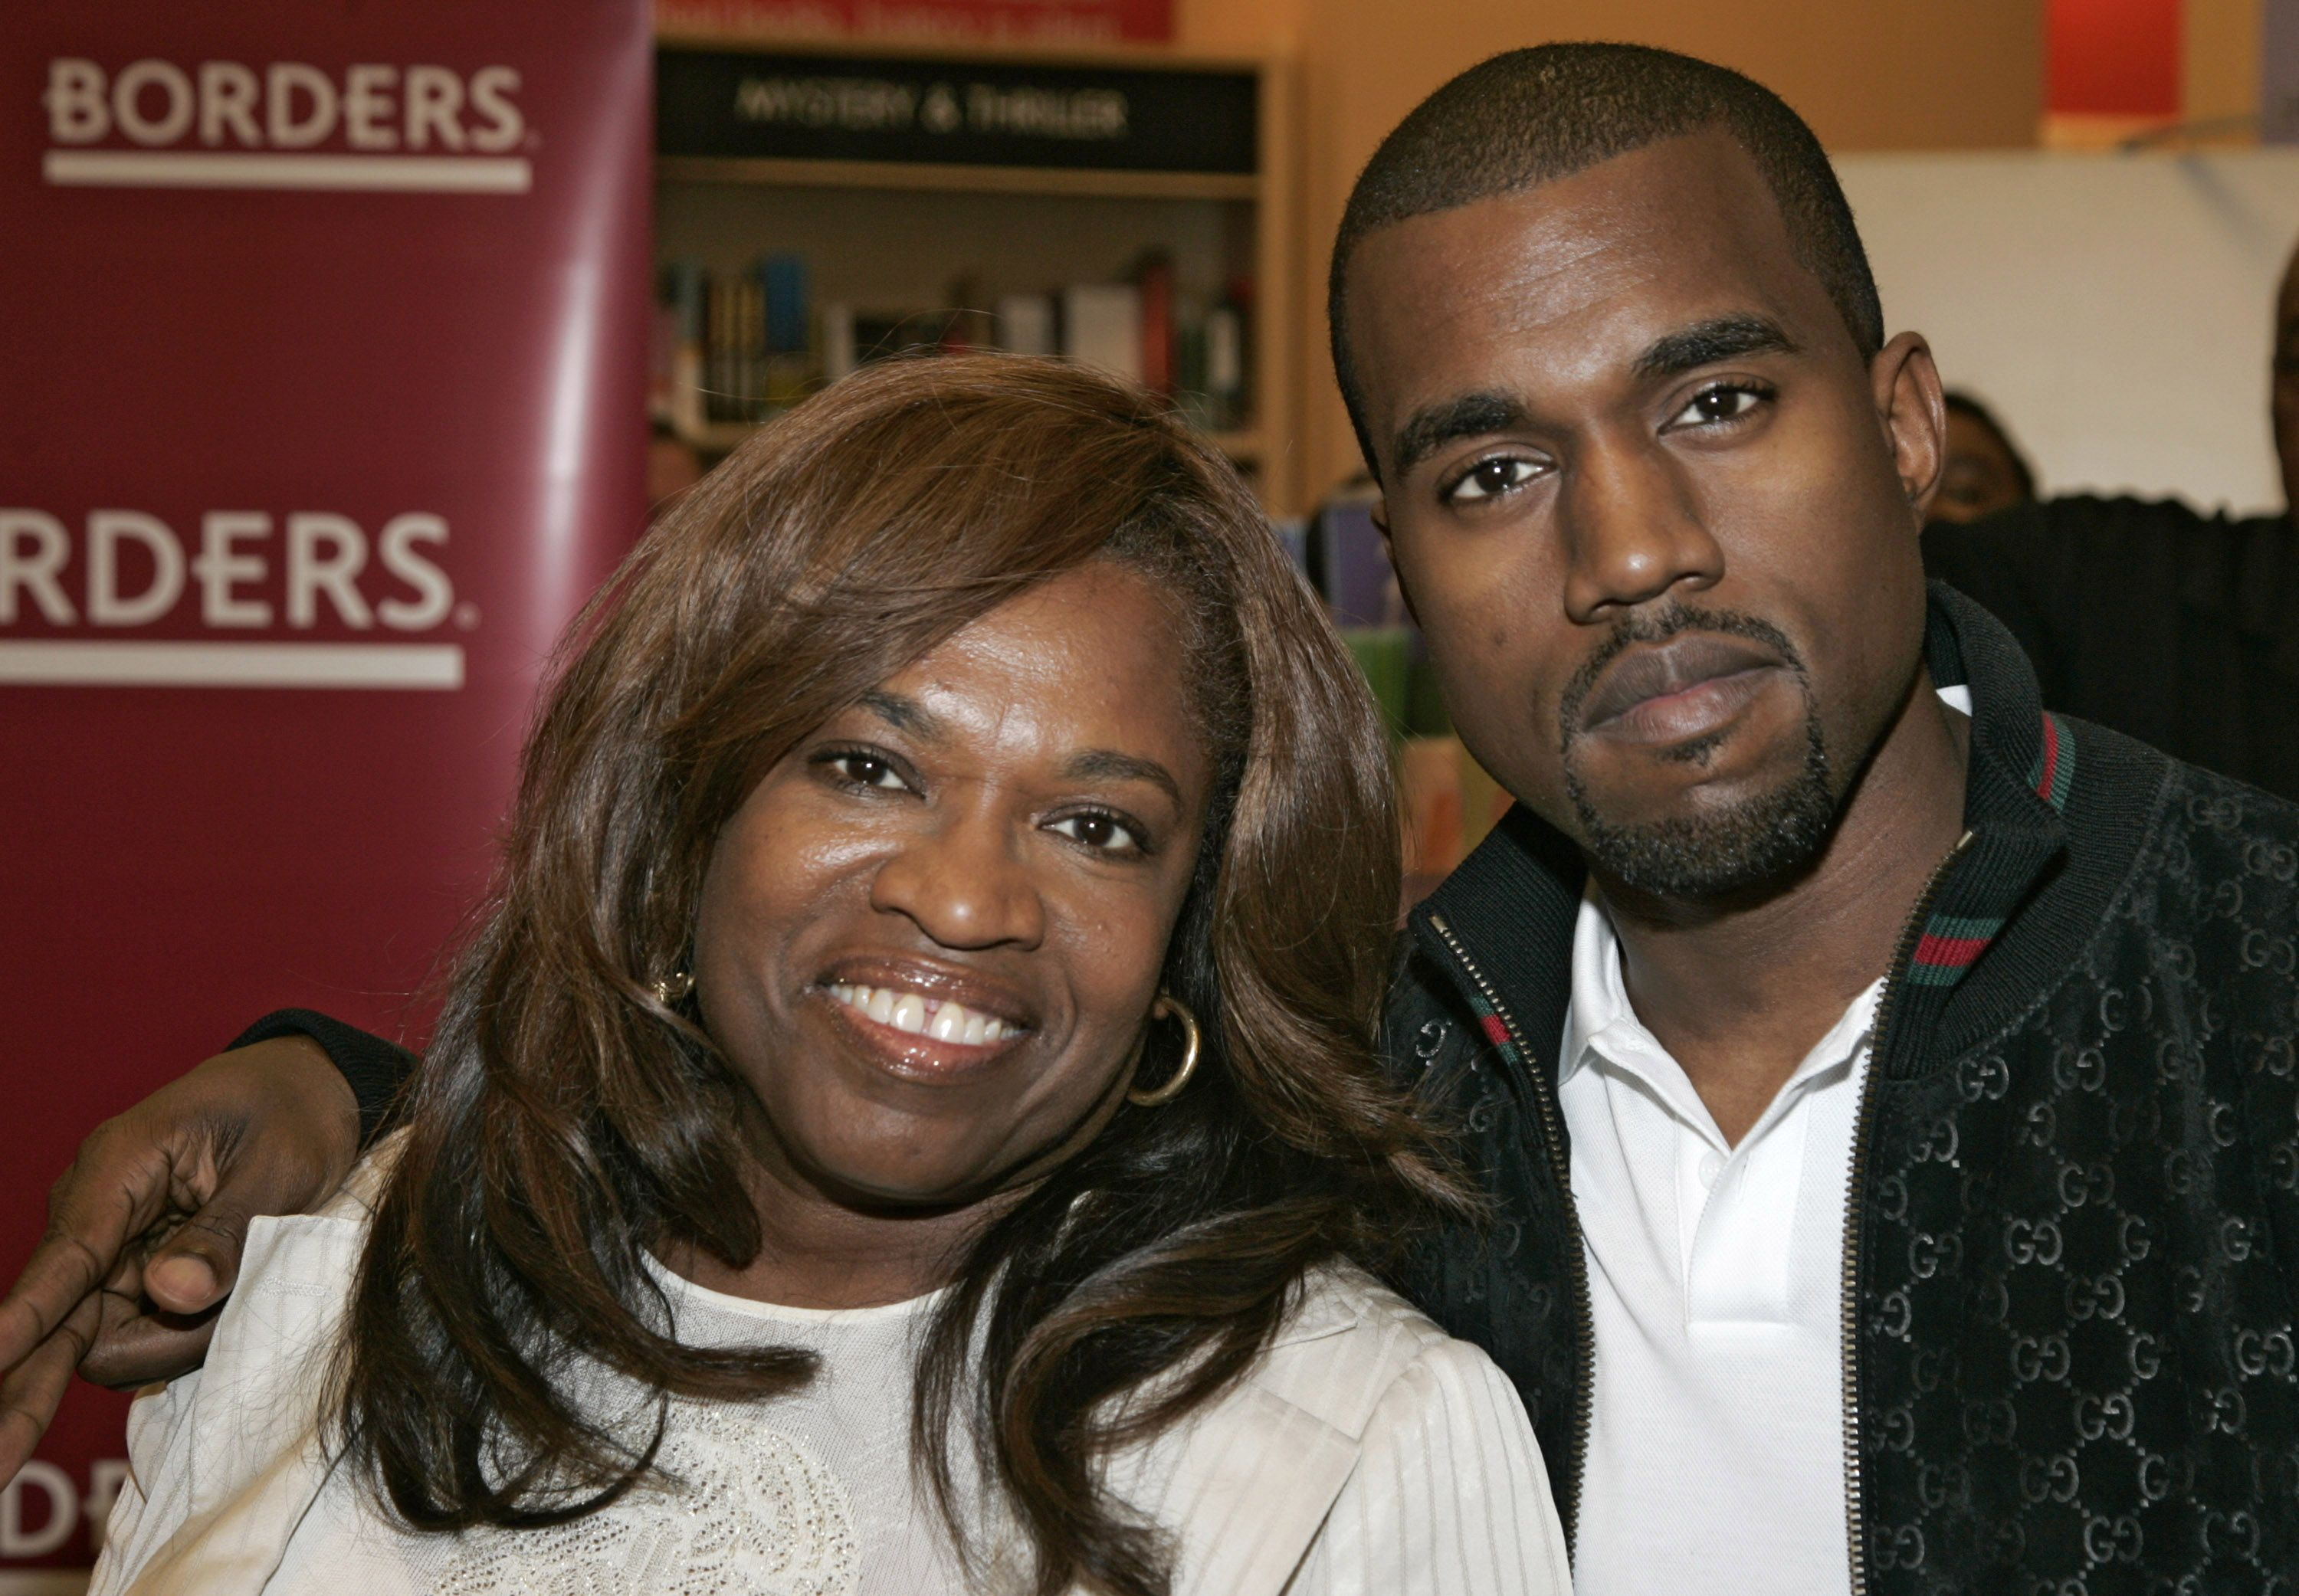 """Donda West at a book signing for """"Raising Kanye"""" with son Kanye West in June 2007 